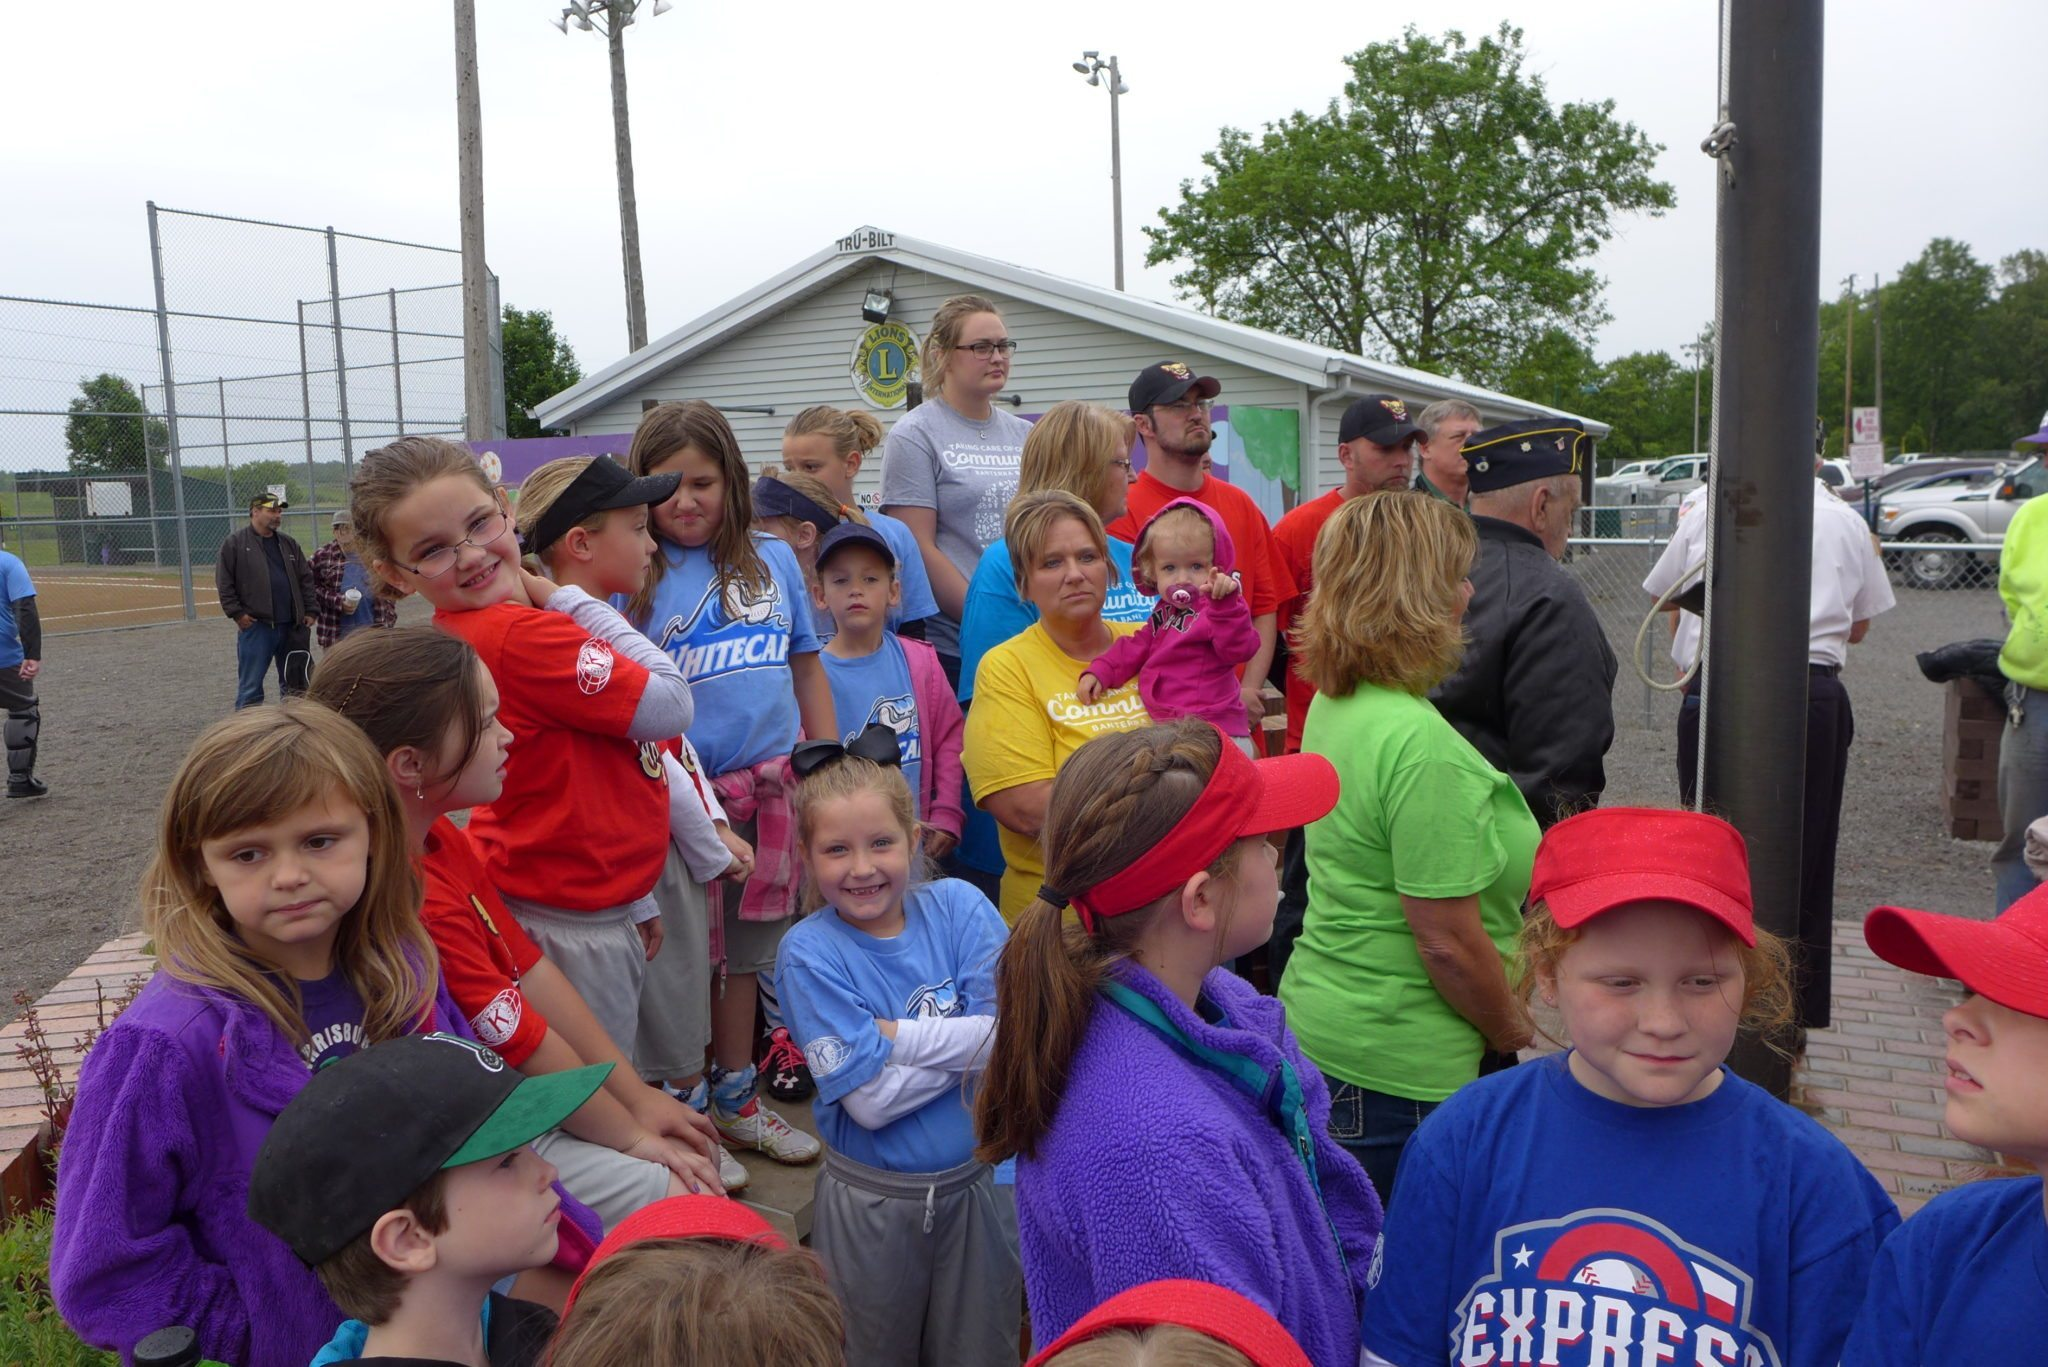 Banterra Employees, ball players and parents watch the flag folding.